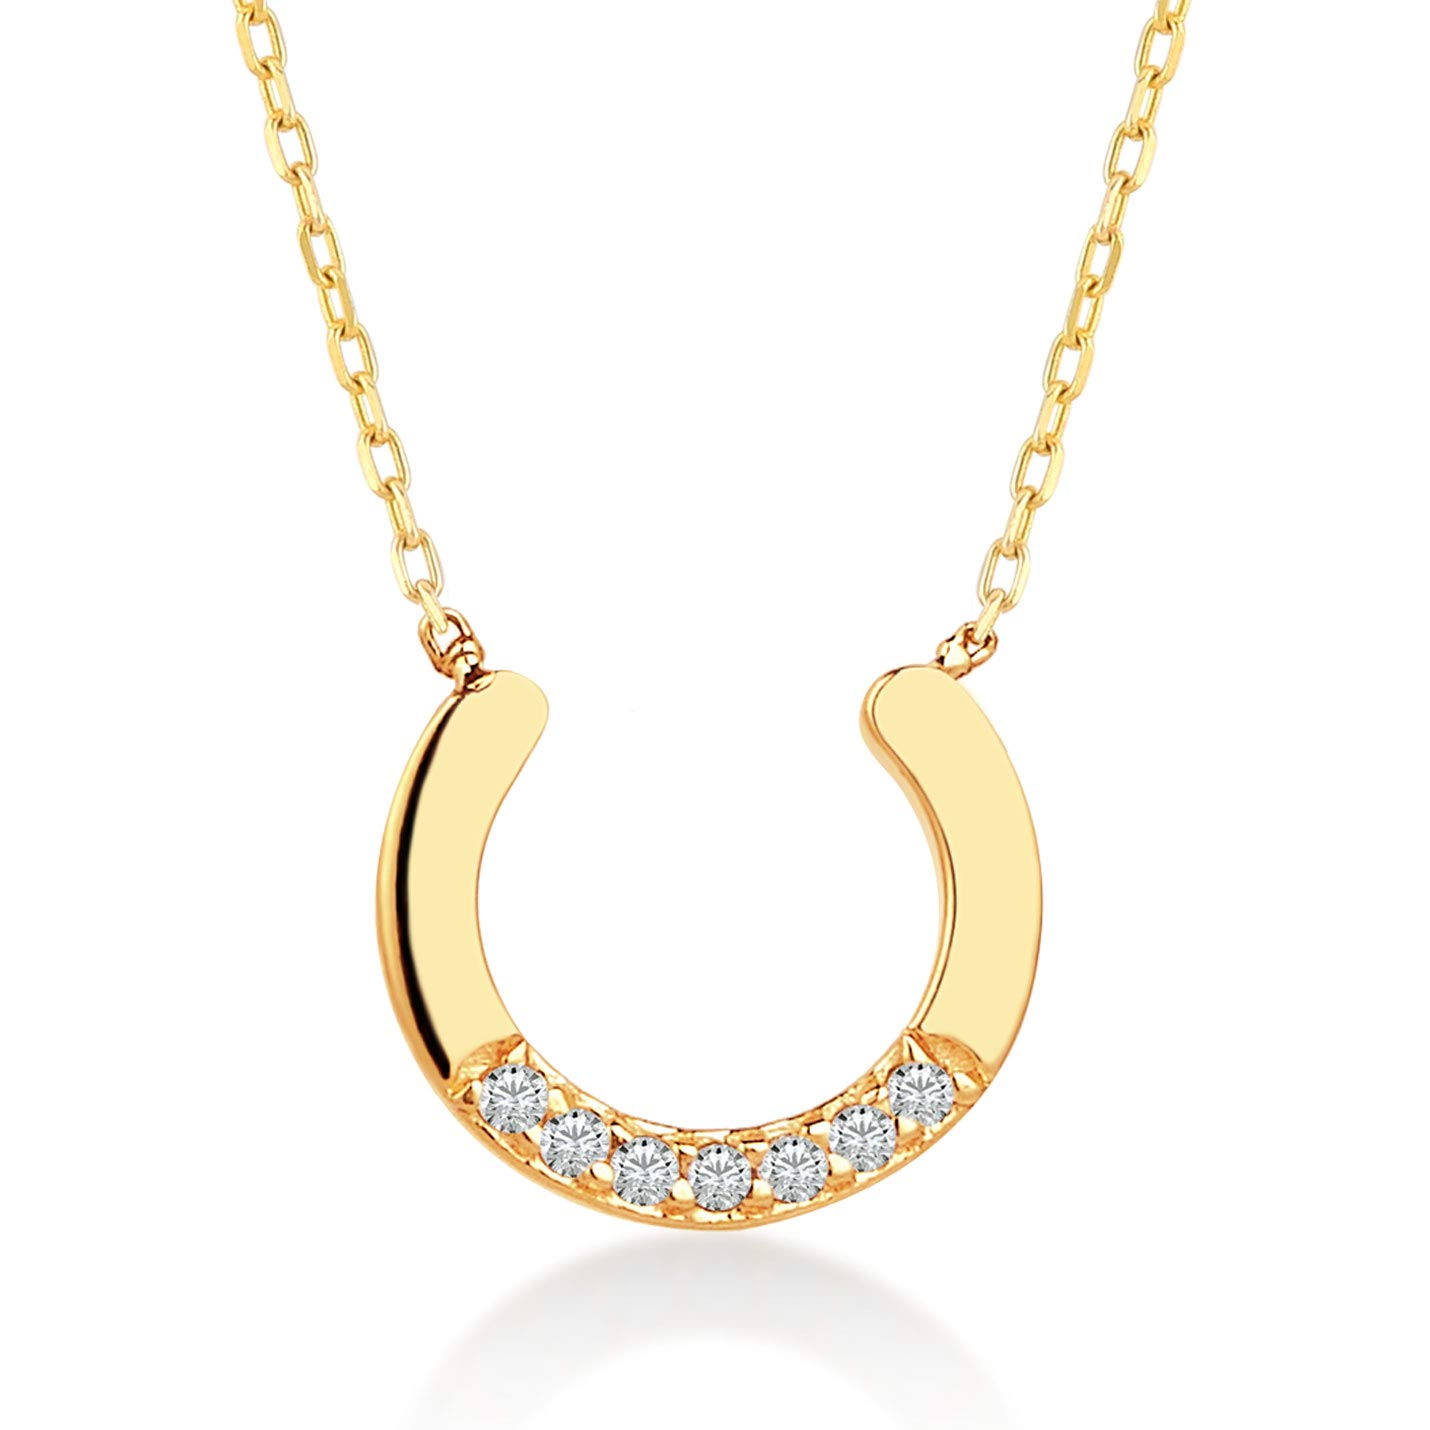 Gelin 14k Real Gold 0.02 ct Diamond Lucky Horse Shoe Chain Necklace for Women, A Perfect Birthday Gifts for Girlfriend, Wife, 18 inch